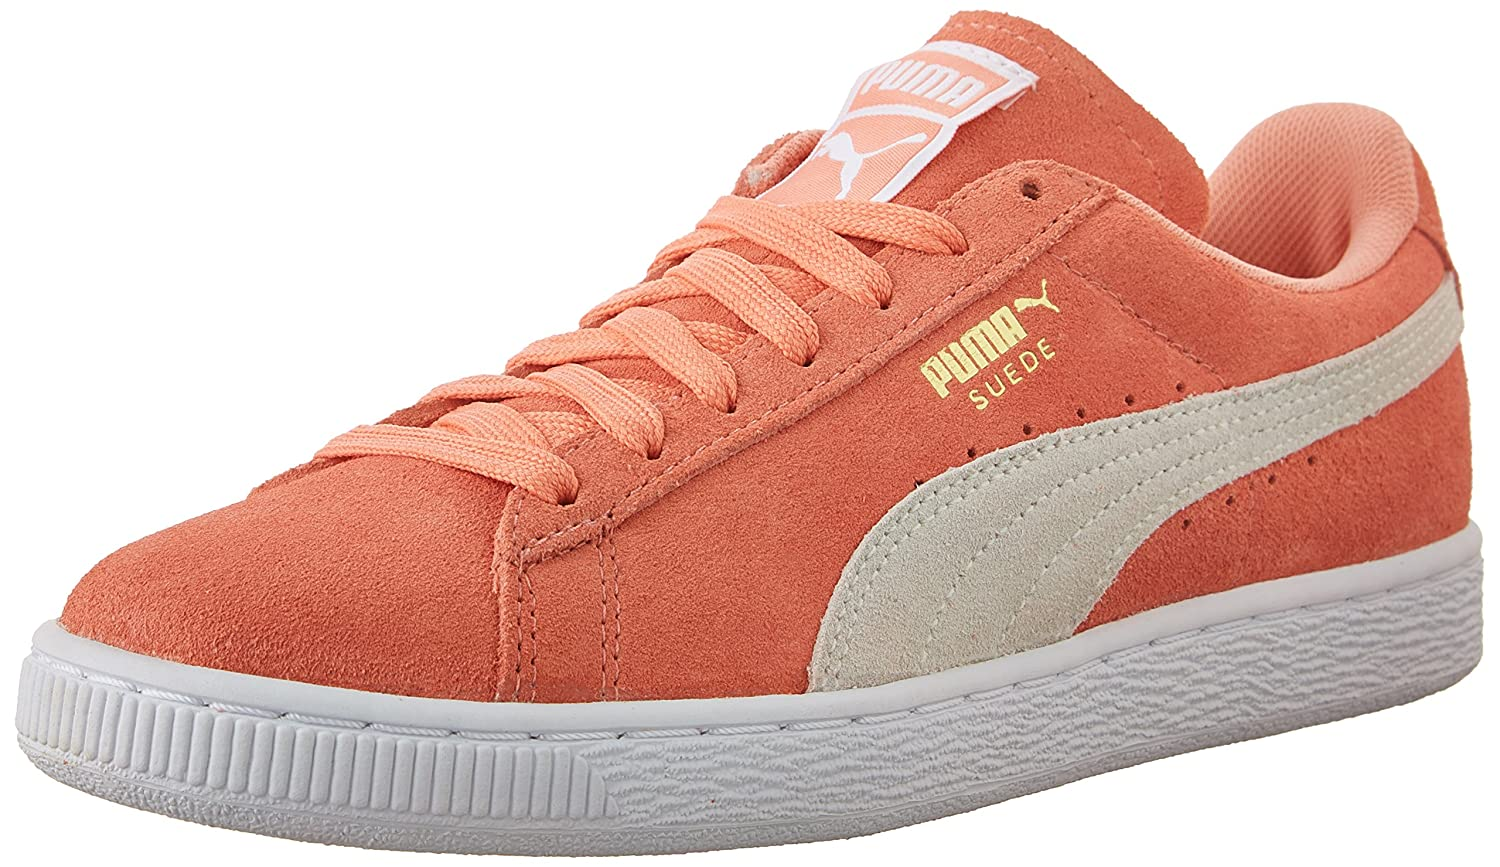 PUMA Women's Suede Classic Sneaker B010FQ0ABW 5.5 M US|Desert Flower/White